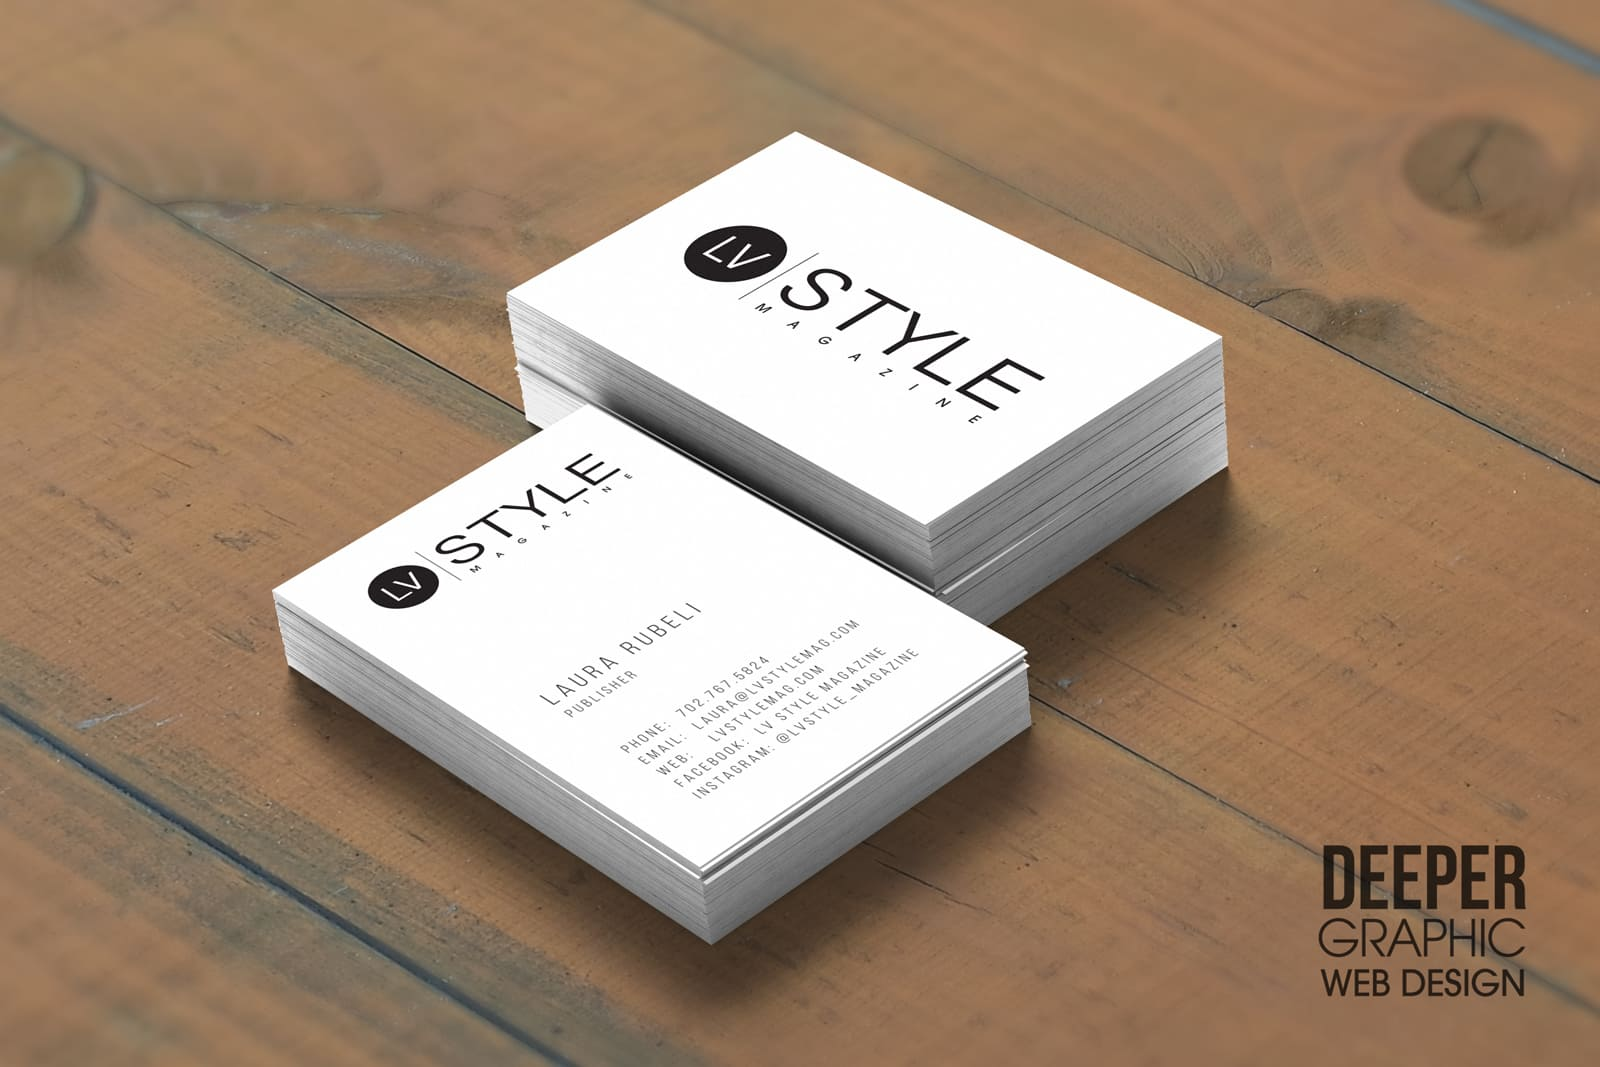 Business card design las vegas web design las vegas graphic businesscarddesign lasvegas04 min colourmoves